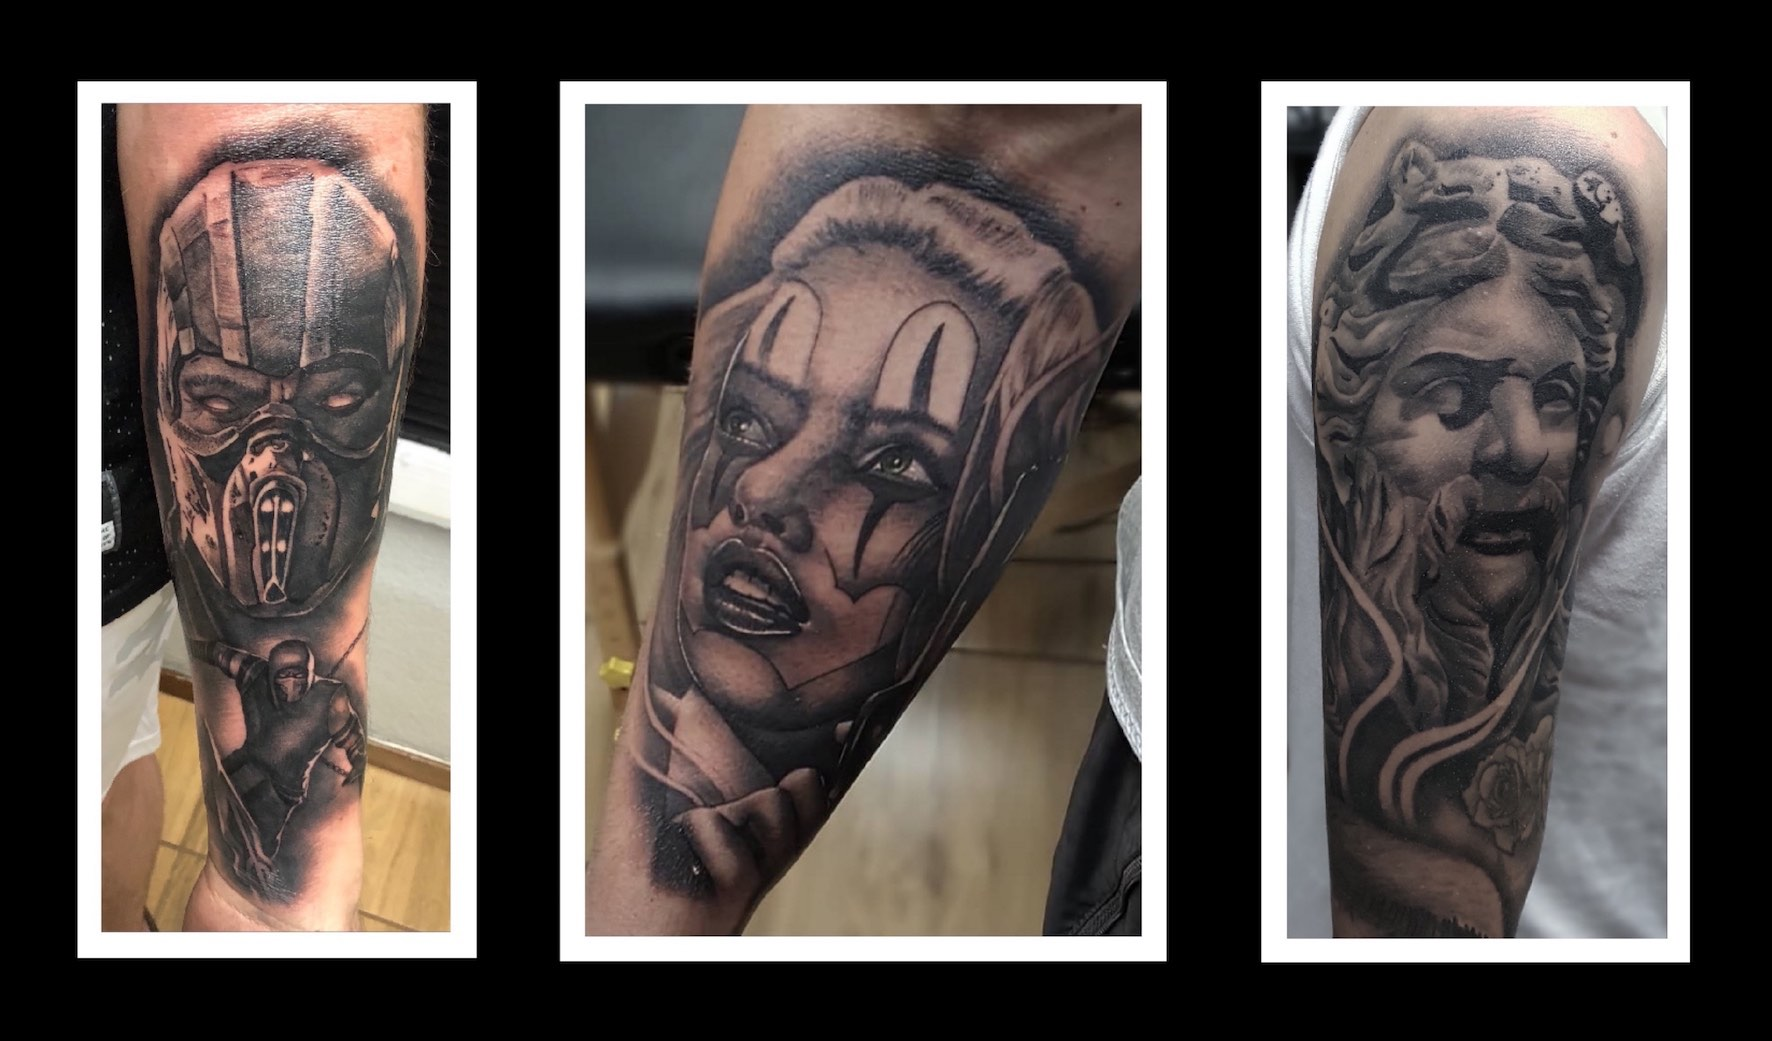 Black and grey realism tattoos down by Kyle Beyers